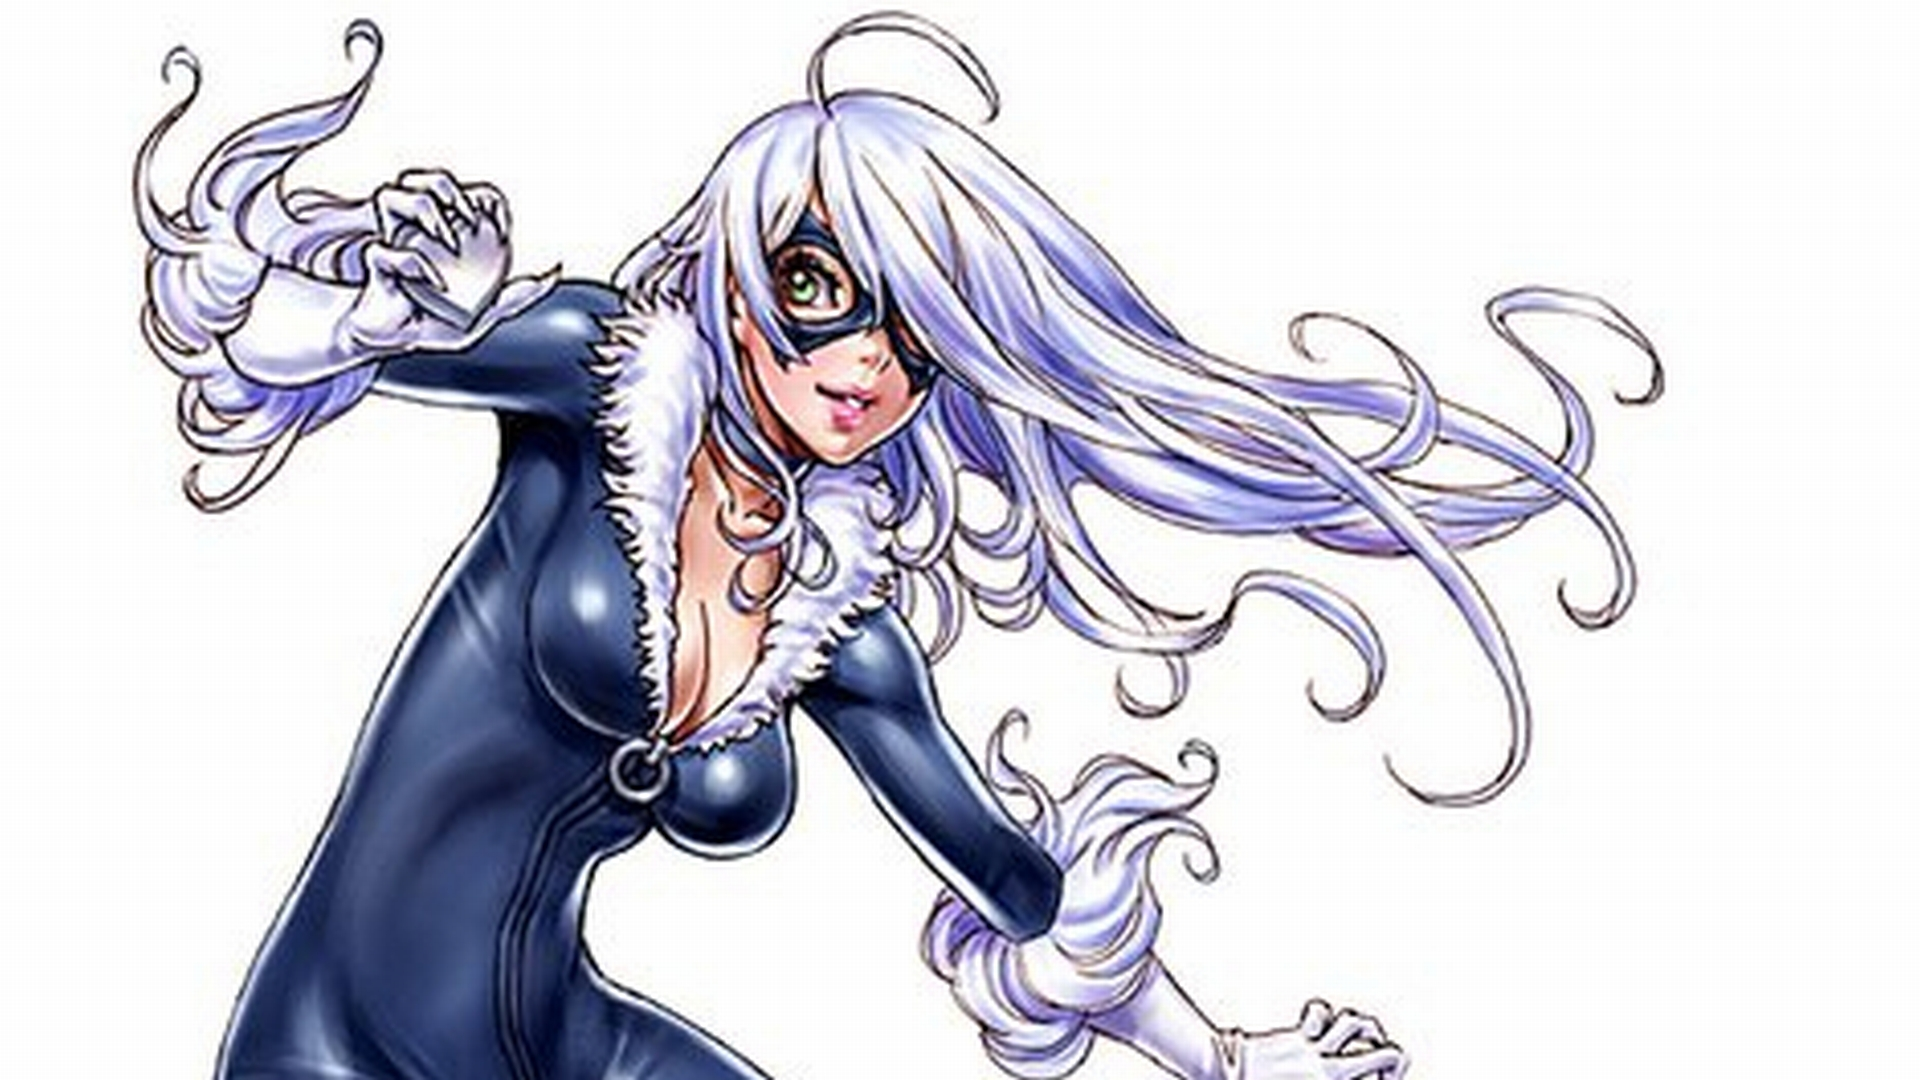 Black Cat Computer Wallpapers, Desktop Backgrounds ...